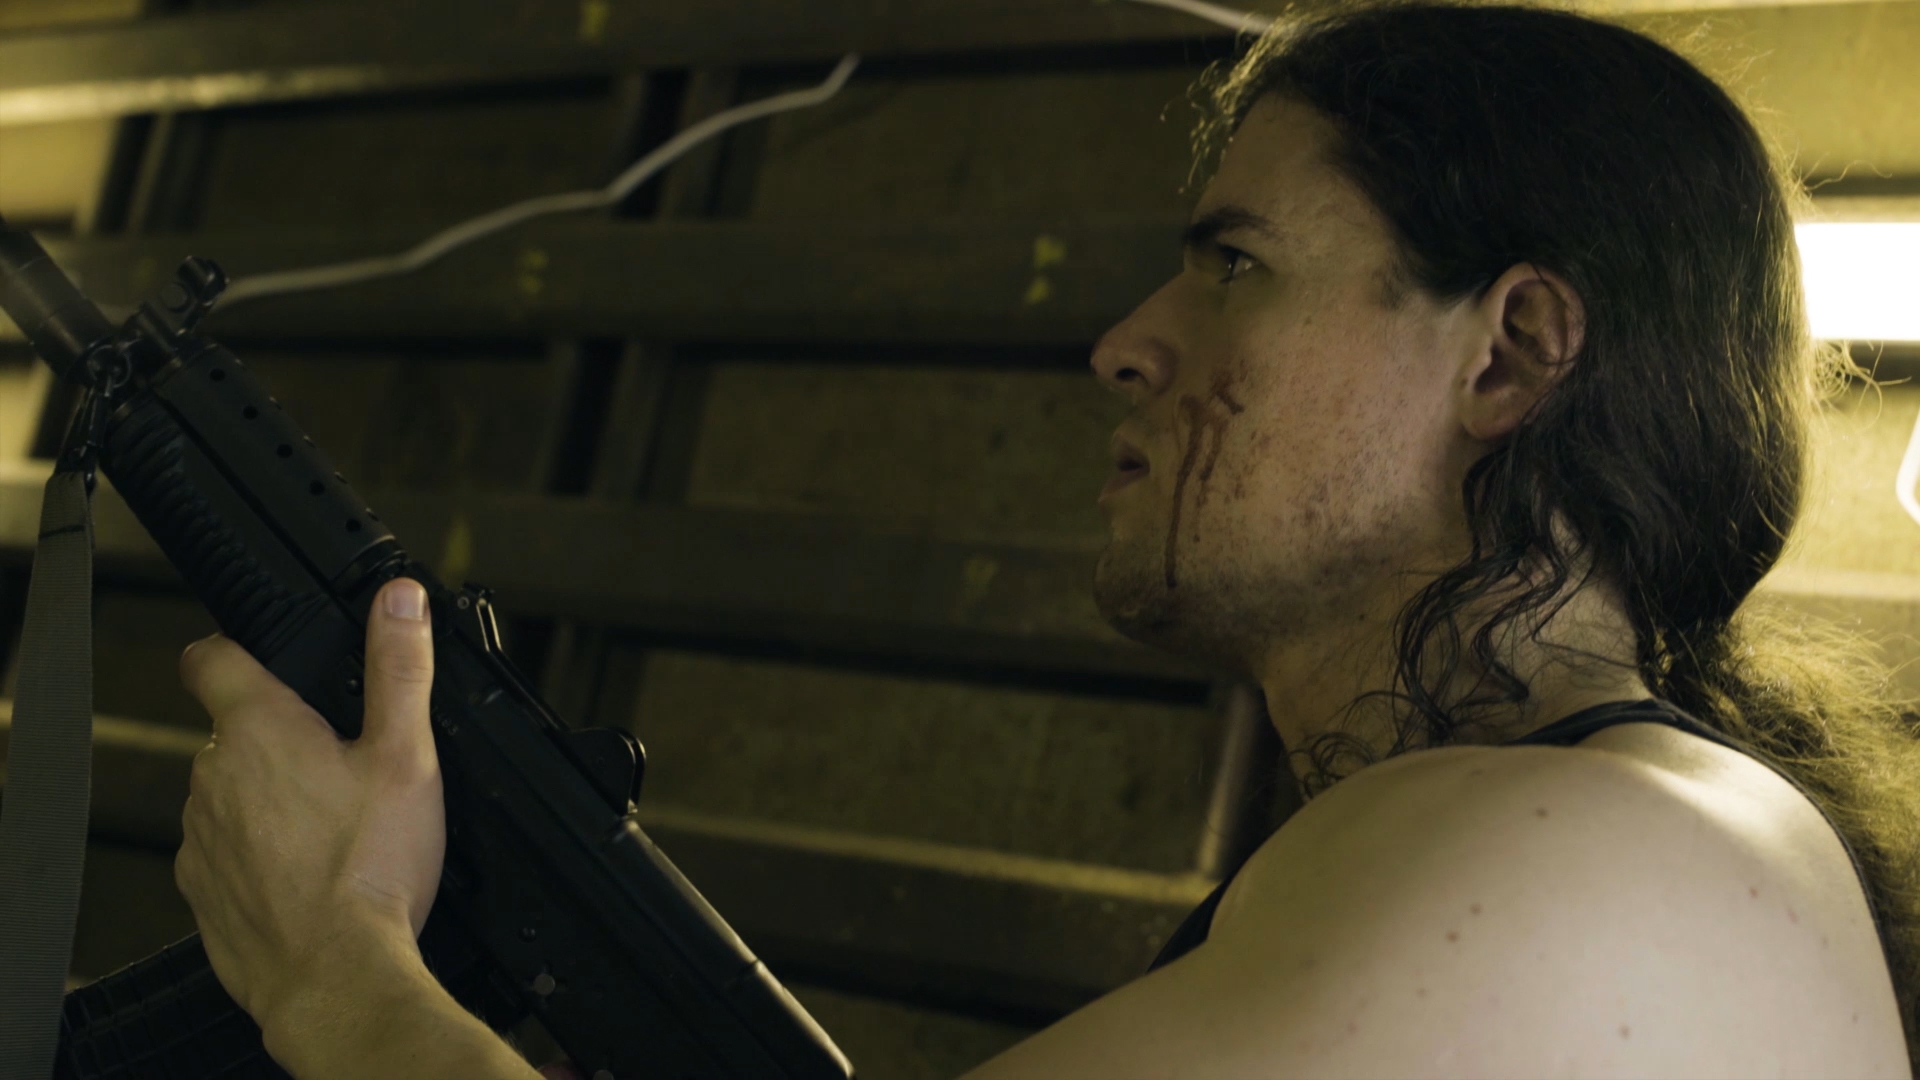 From the sci-fi short film Fringe Territory: Salvage Mission One. Quinton listens, with rifle.